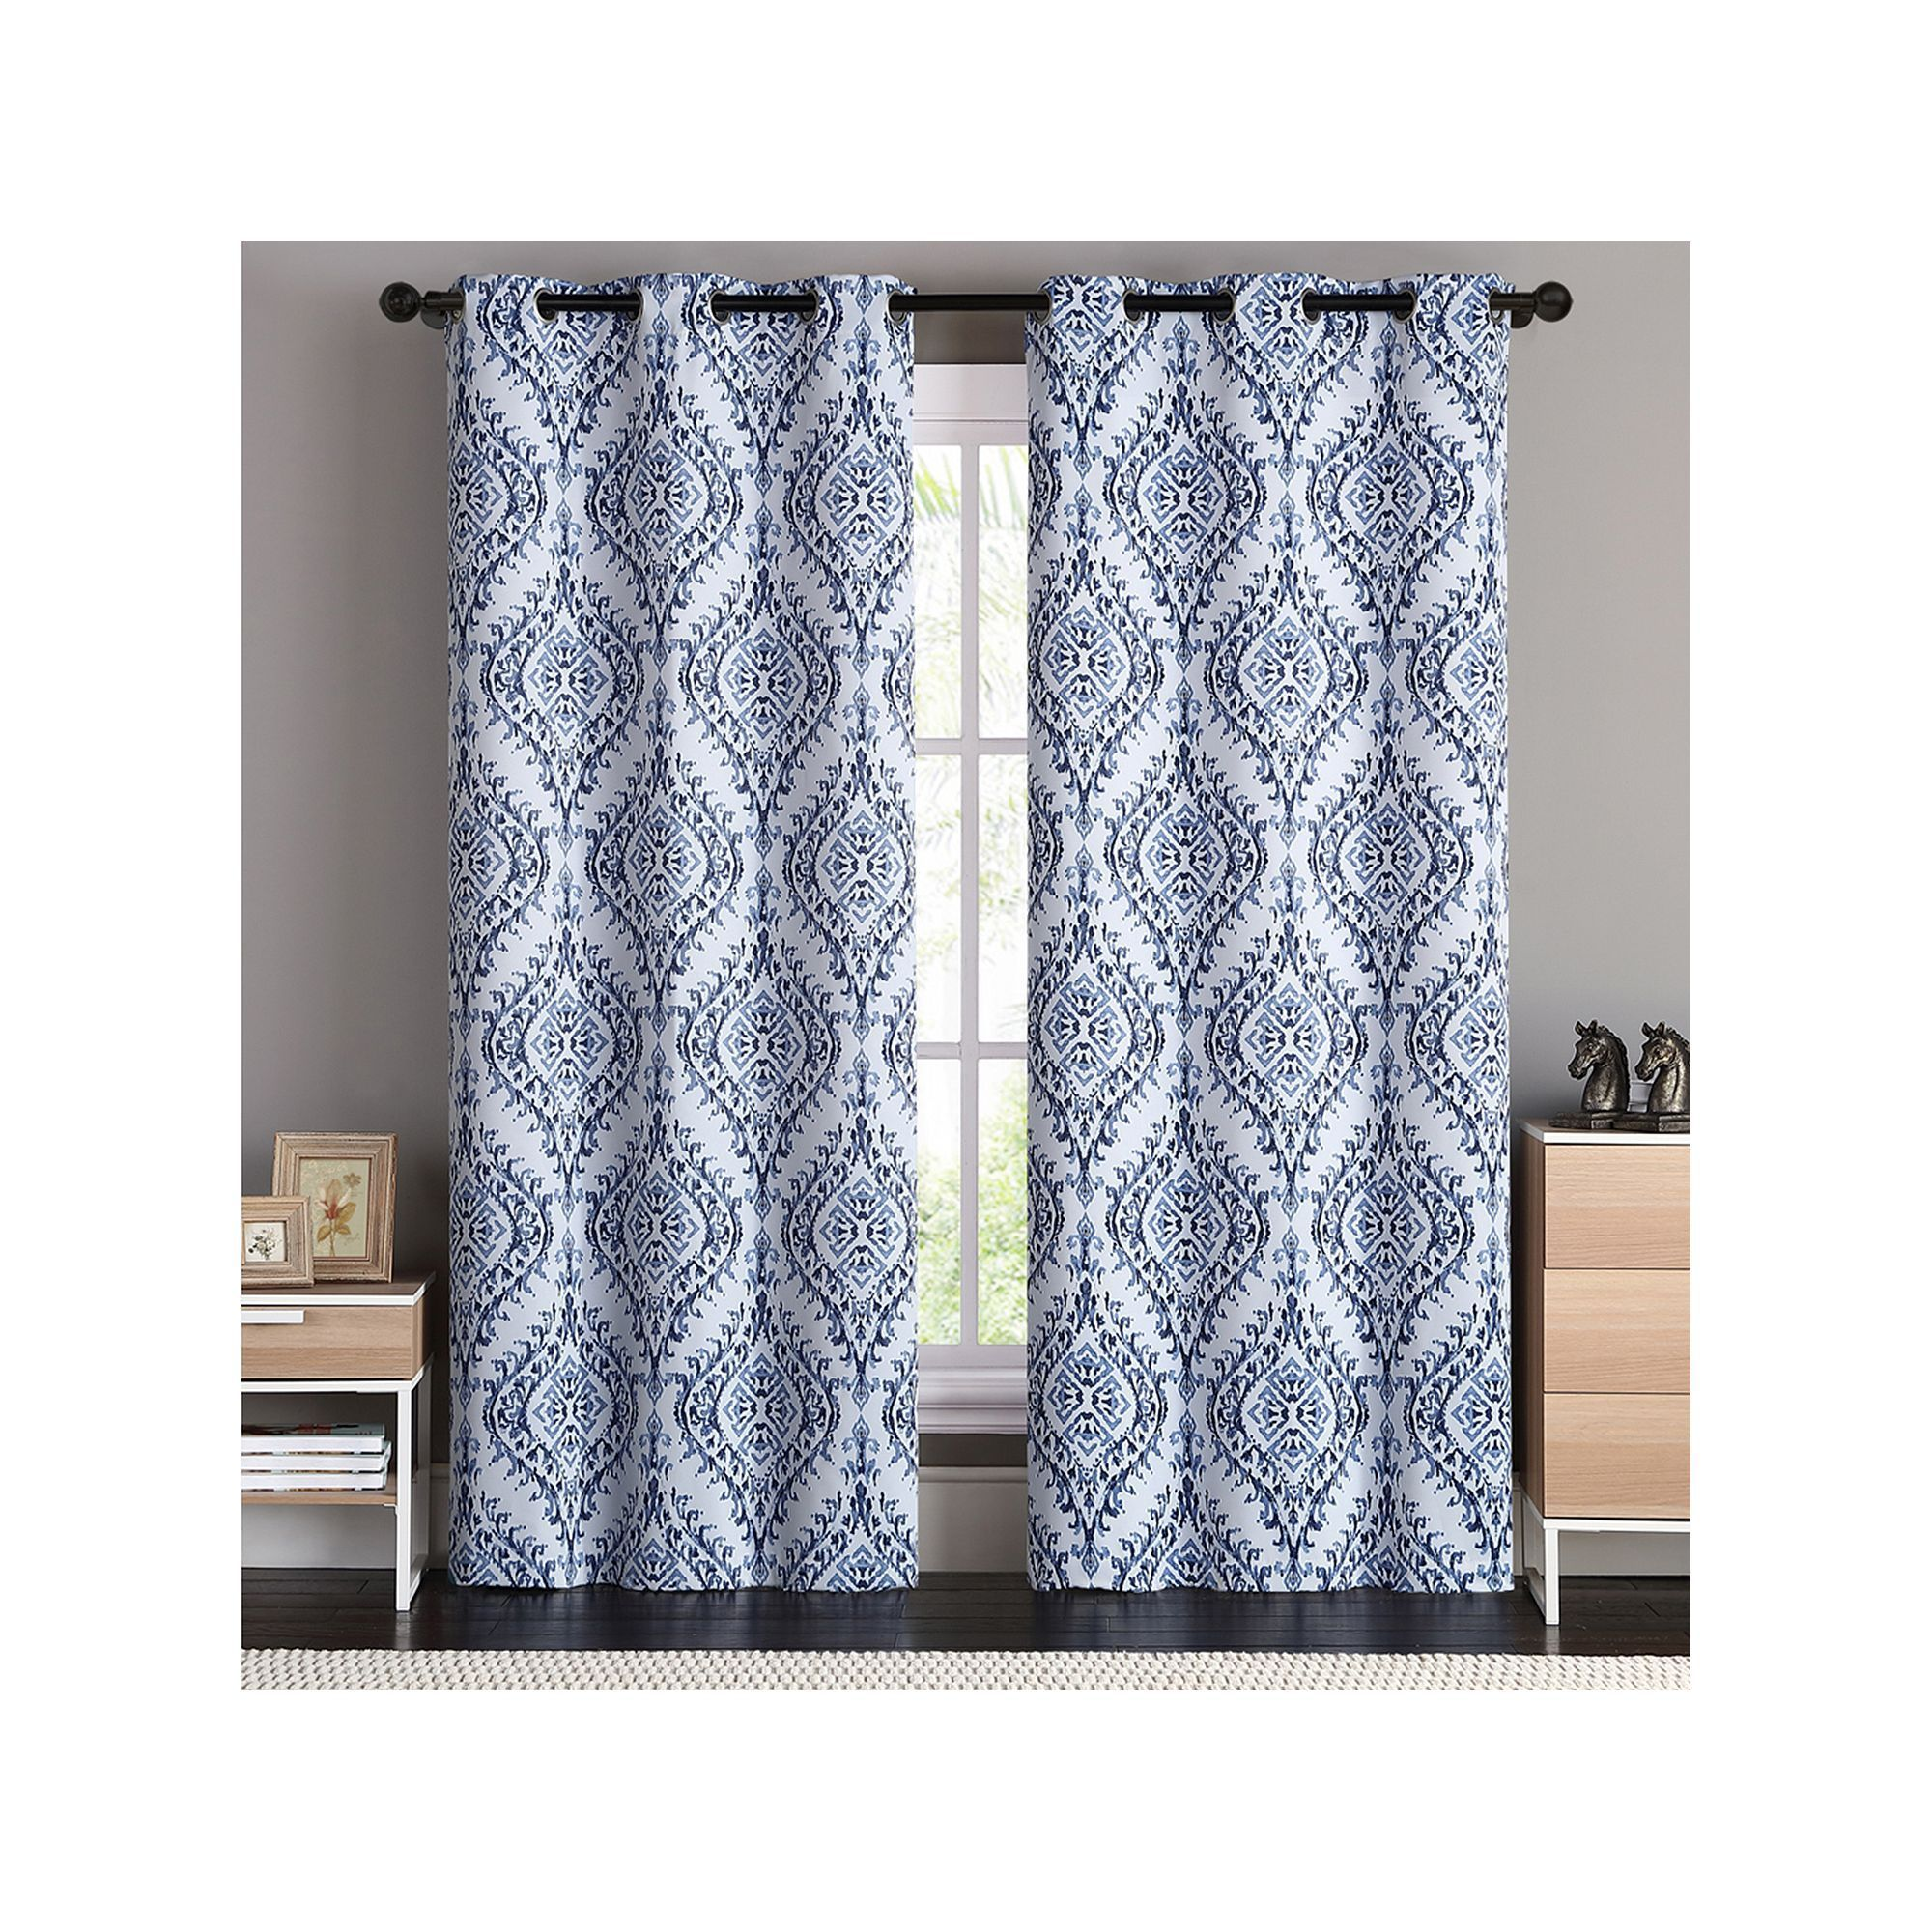 Vcny 2 Pack London Blackout Curtain Blue Panel Curtains Drapes Curtains